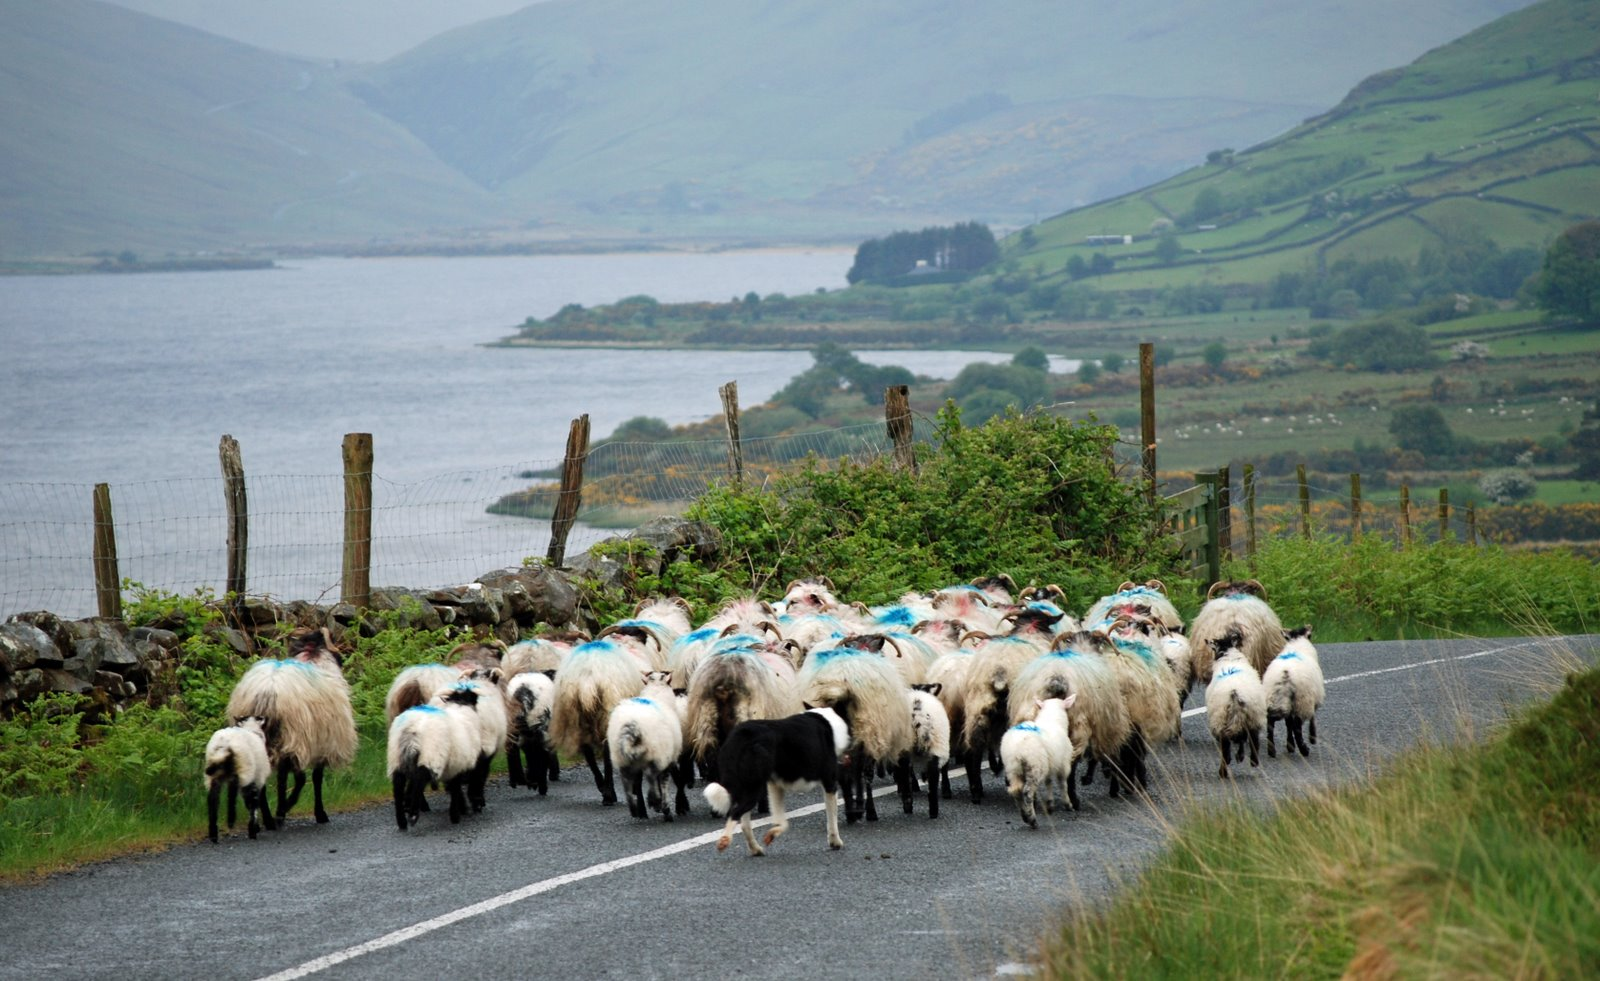 border collie, herding sheep, ireland